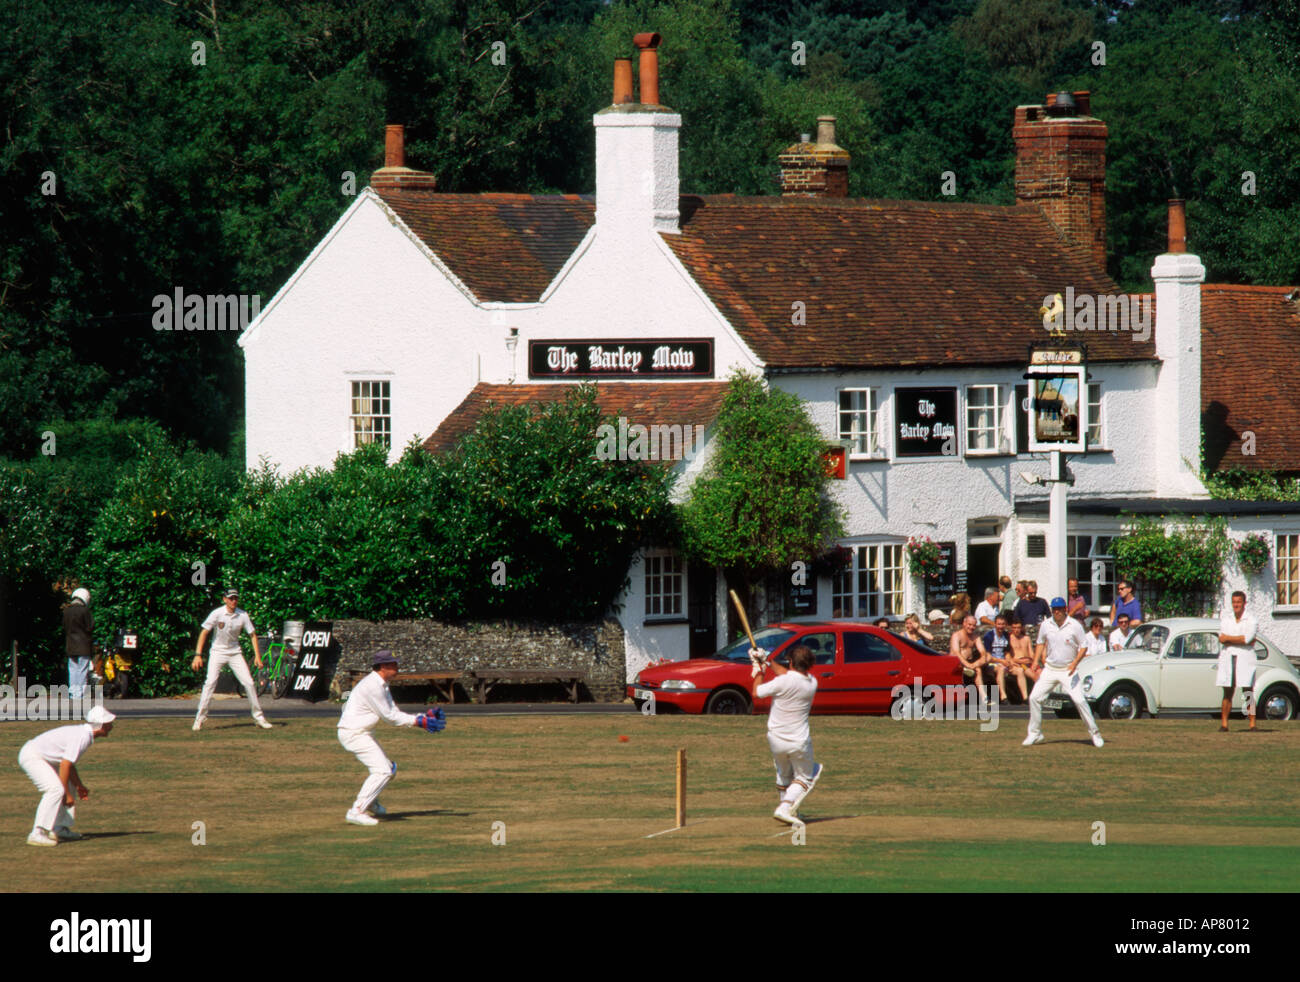 England Tilford village cricket - Stock Image